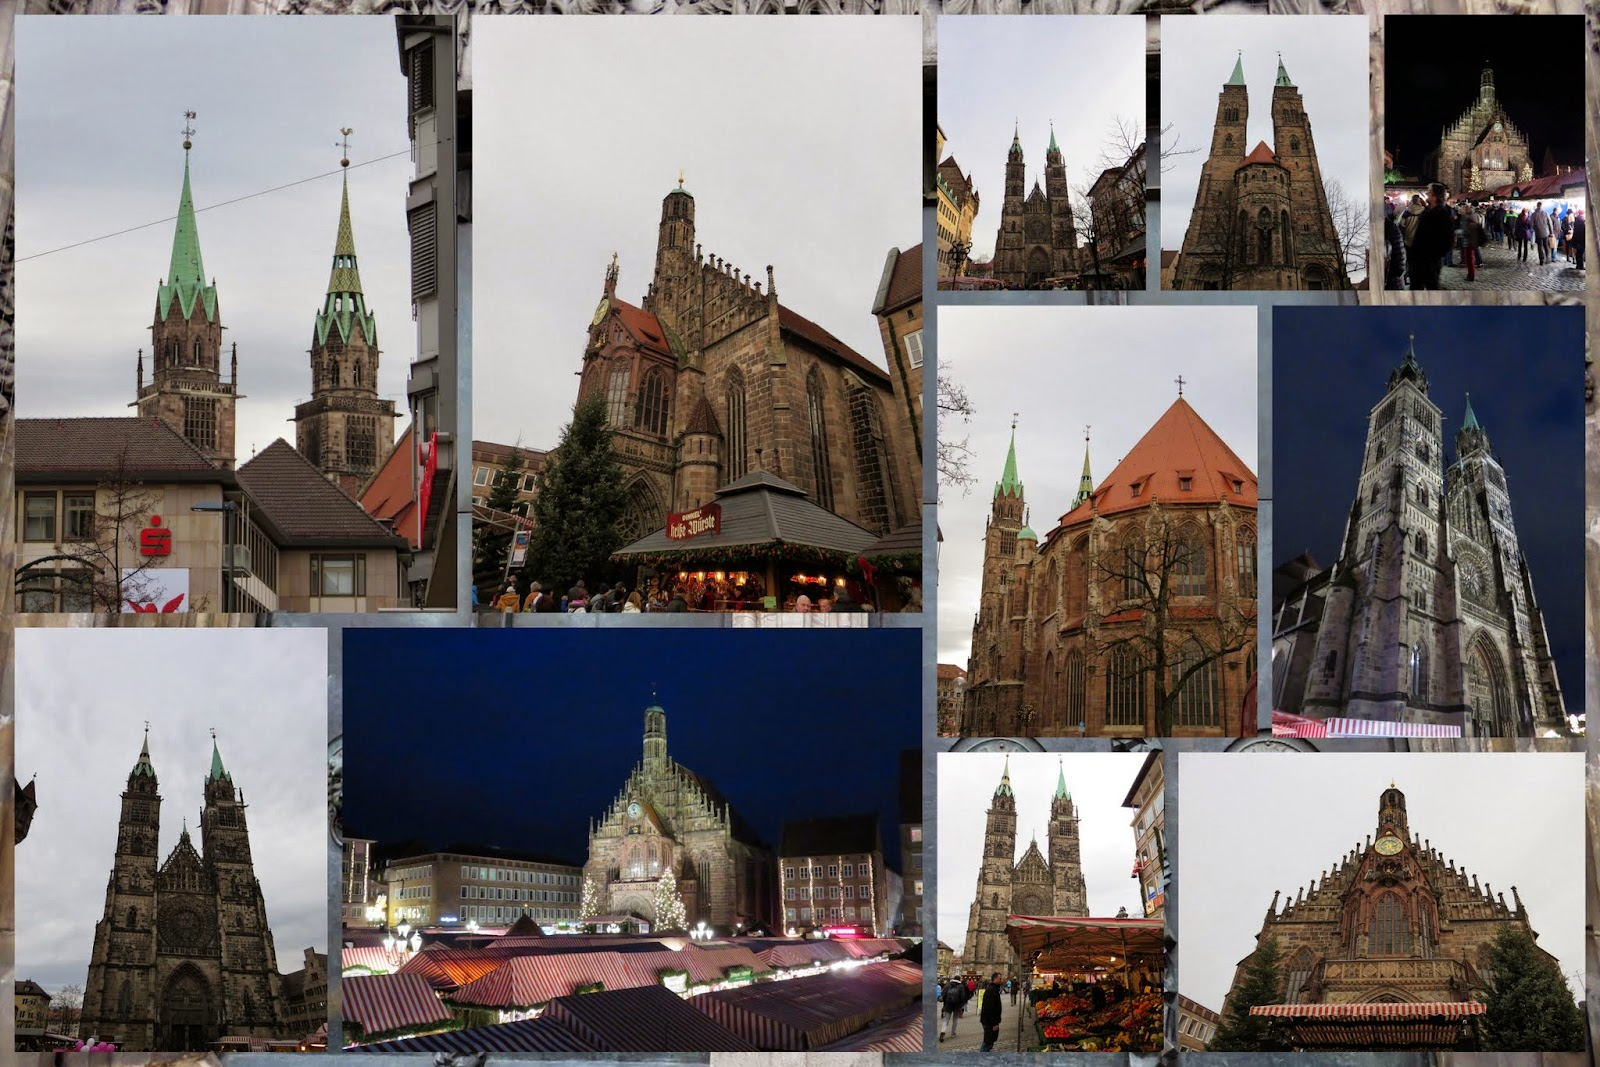 Nuremberg Christmas Market - Church Spires